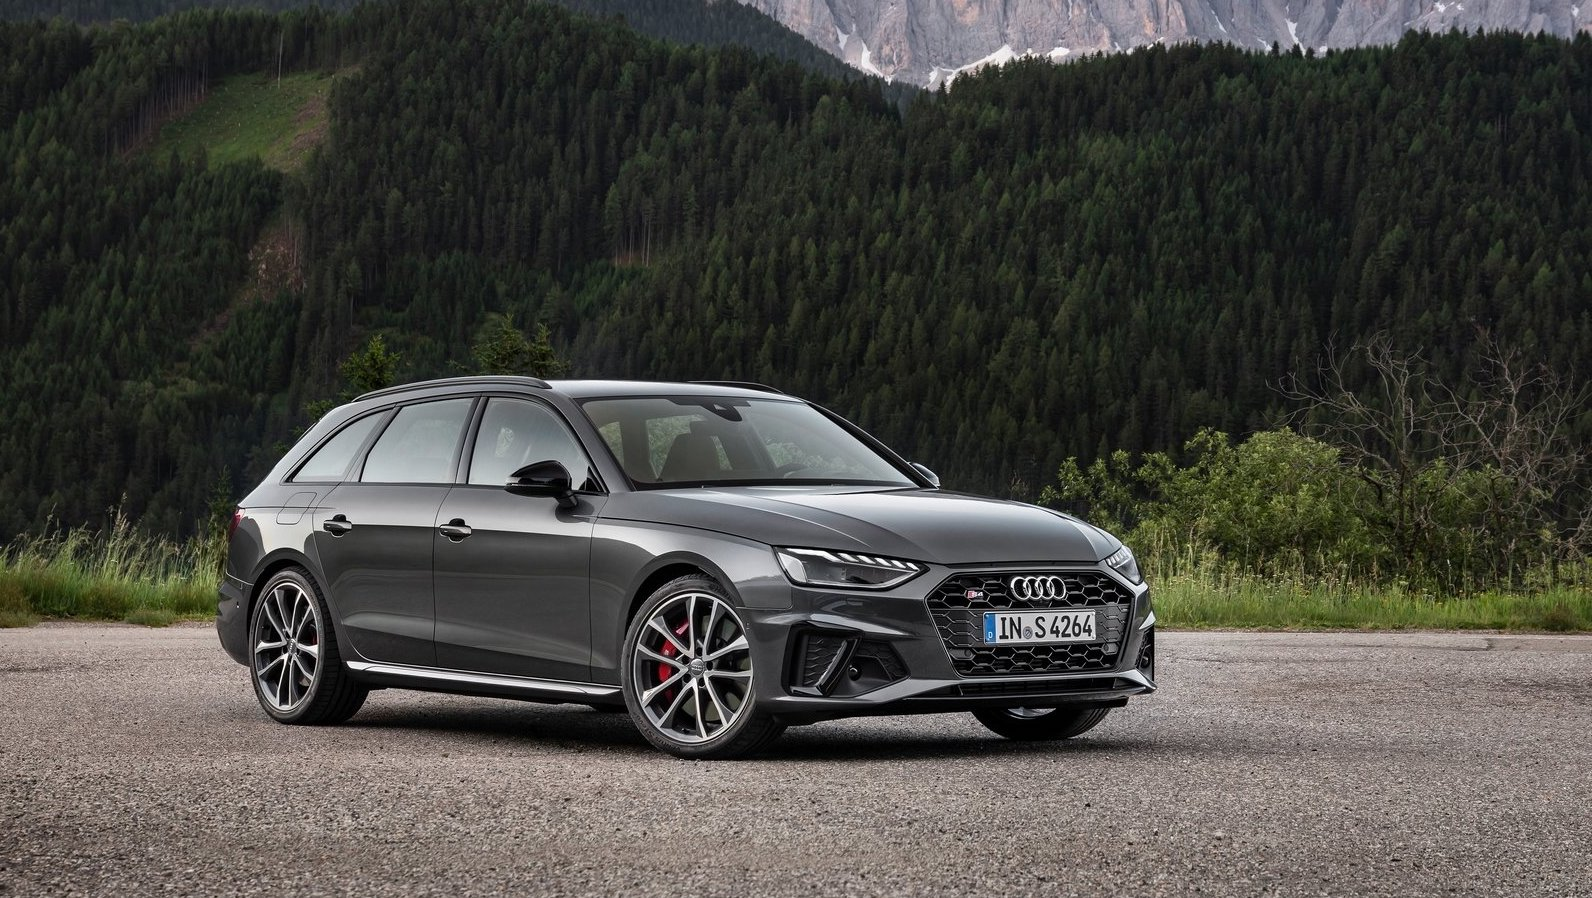 Audi Previews 6 New Rs Models 2020 Rs Q8 Rs Q3 Rs 6 Likely